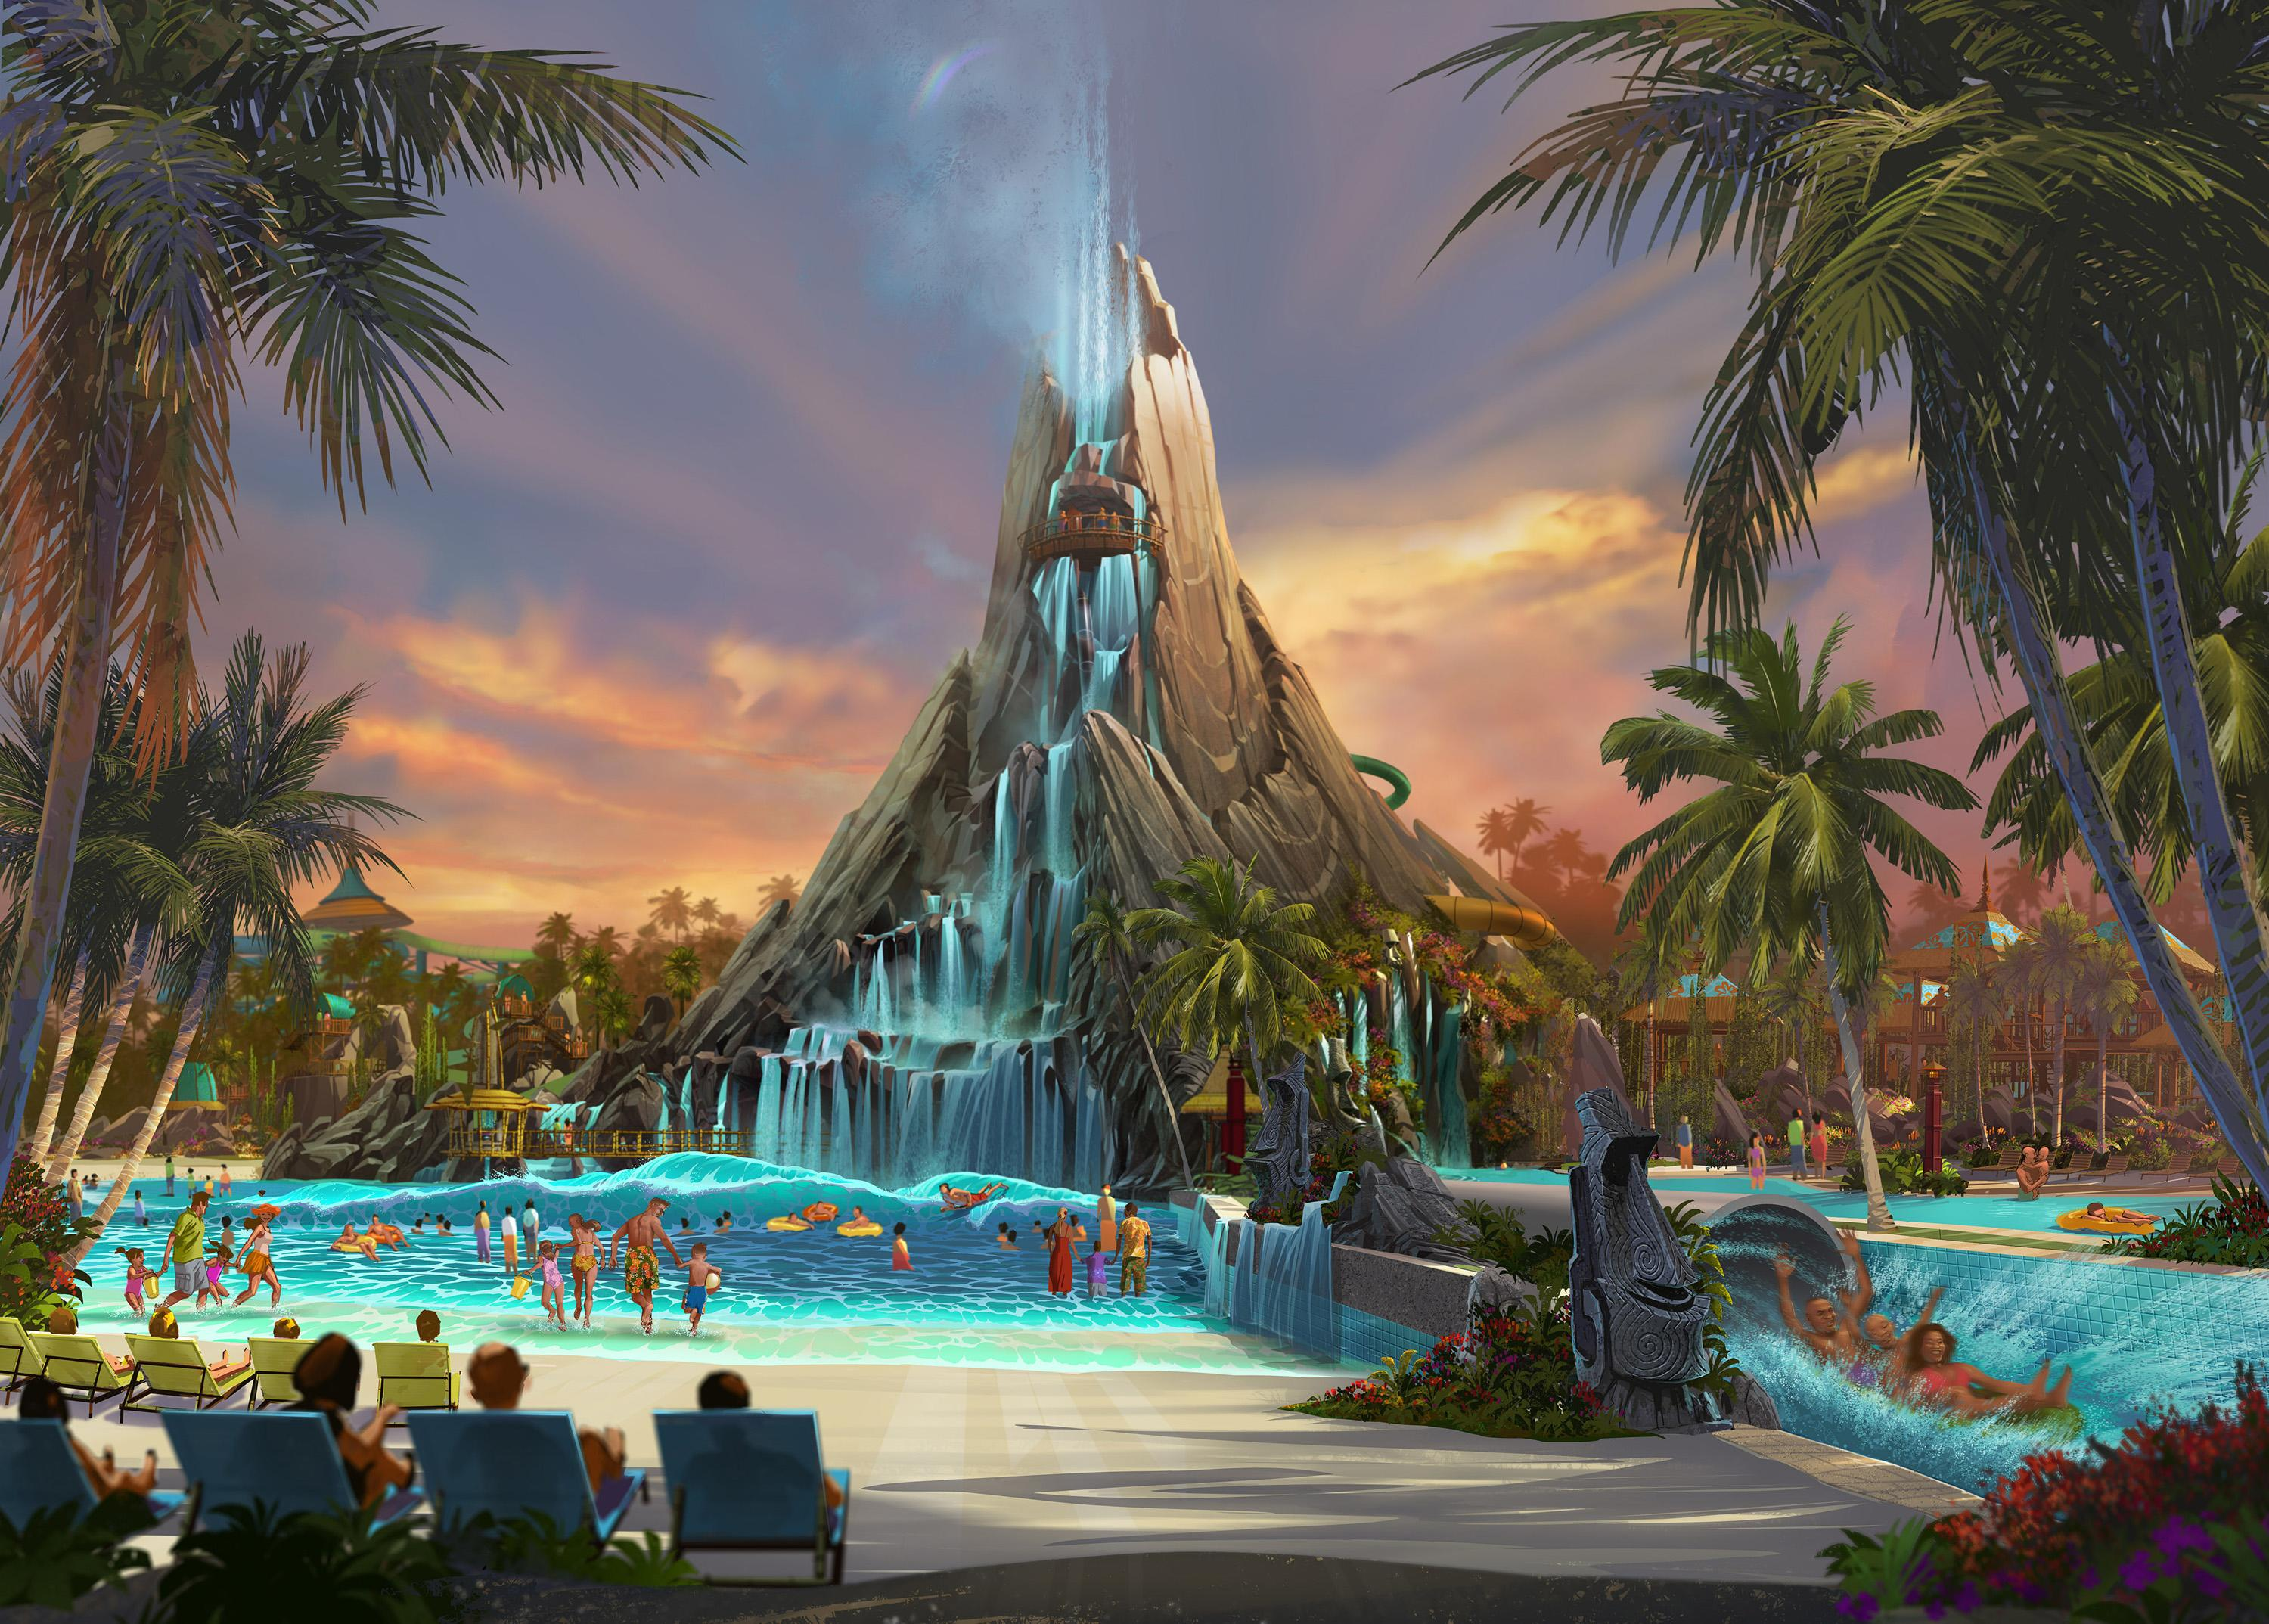 Universal Orlando to build a water park opening in 2017